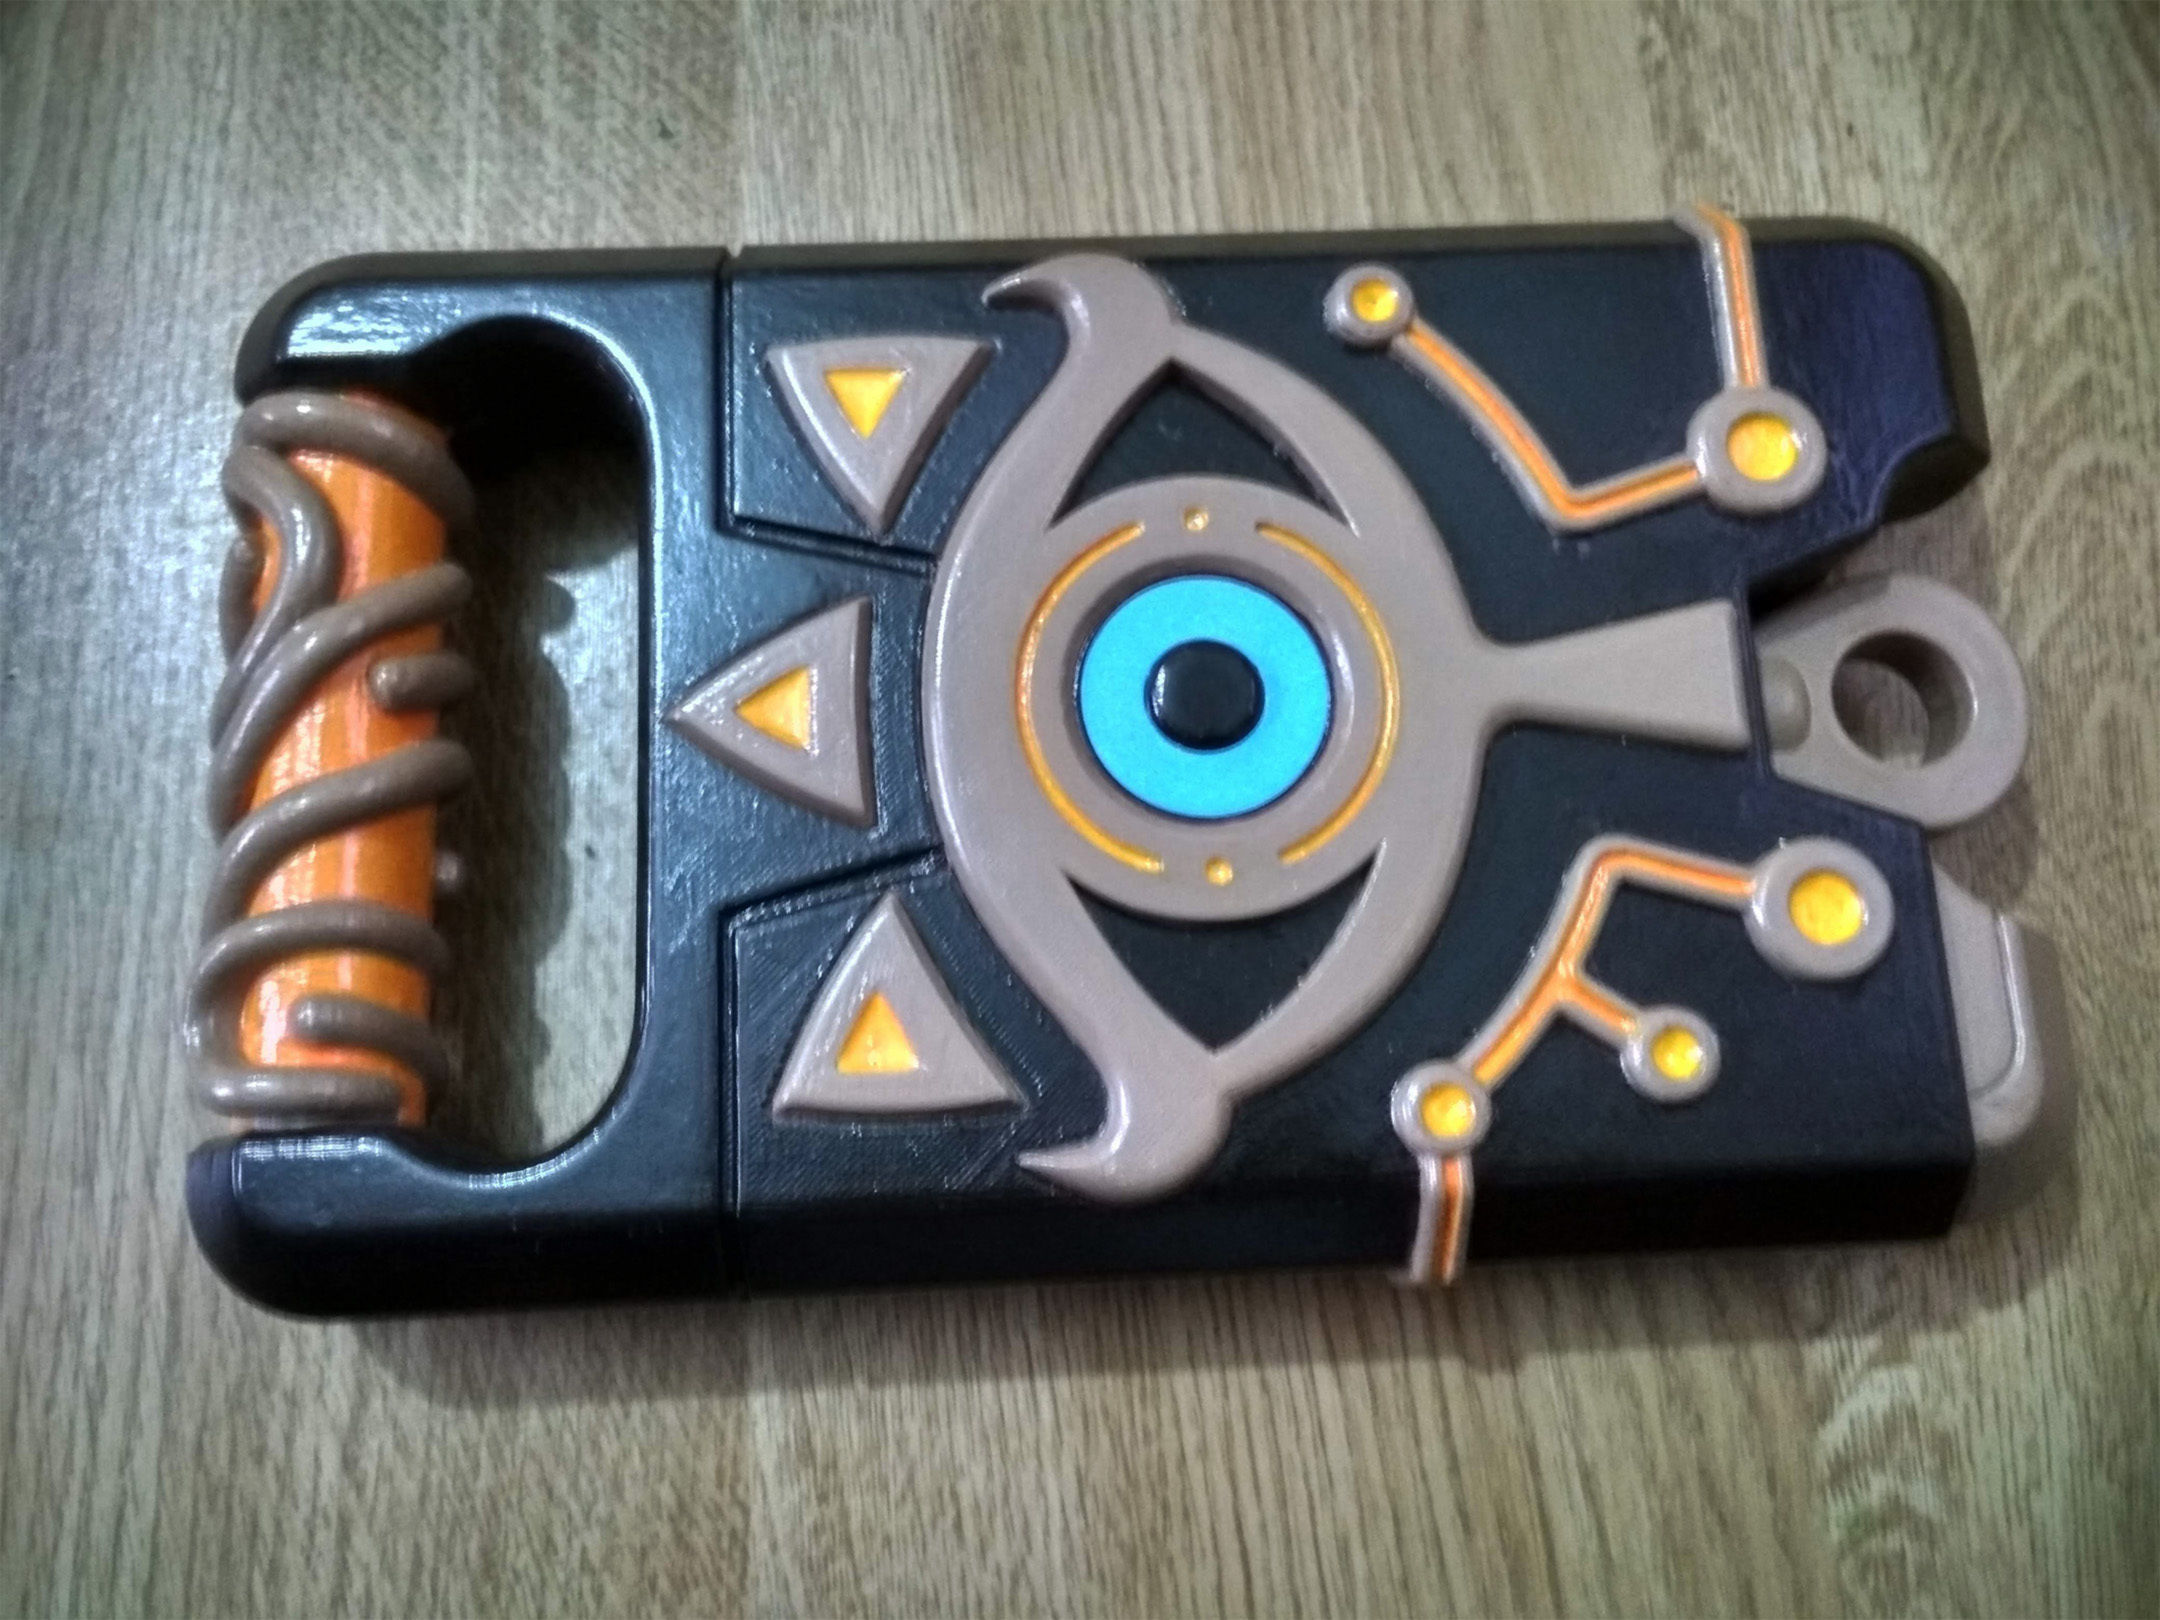 The Sheikah slate from Zelda Breath of the wild